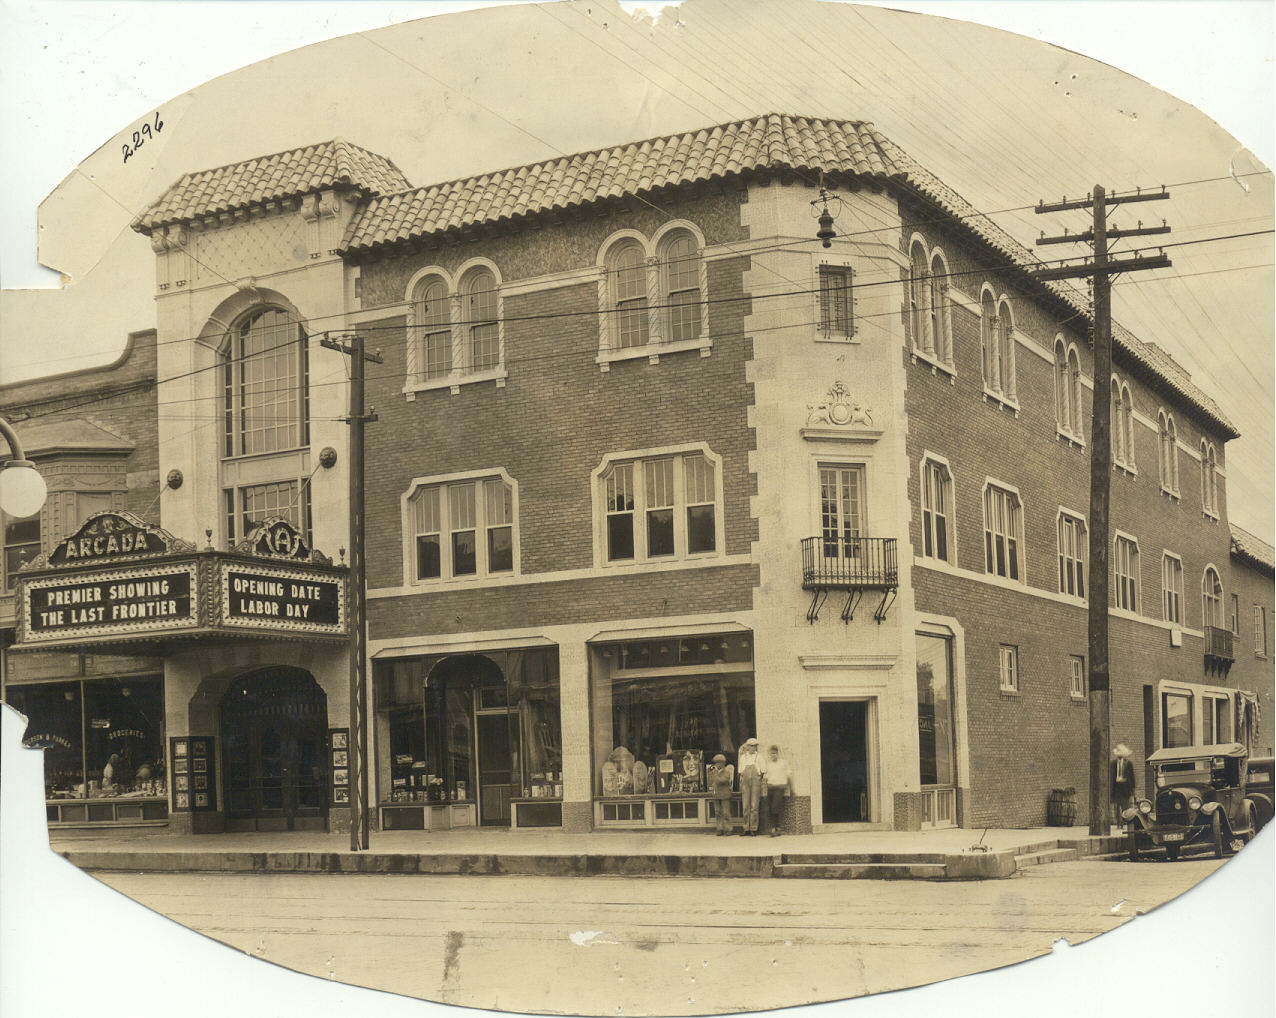 The Arcada Theatre opened 87 years ago today on September 6, 1926.